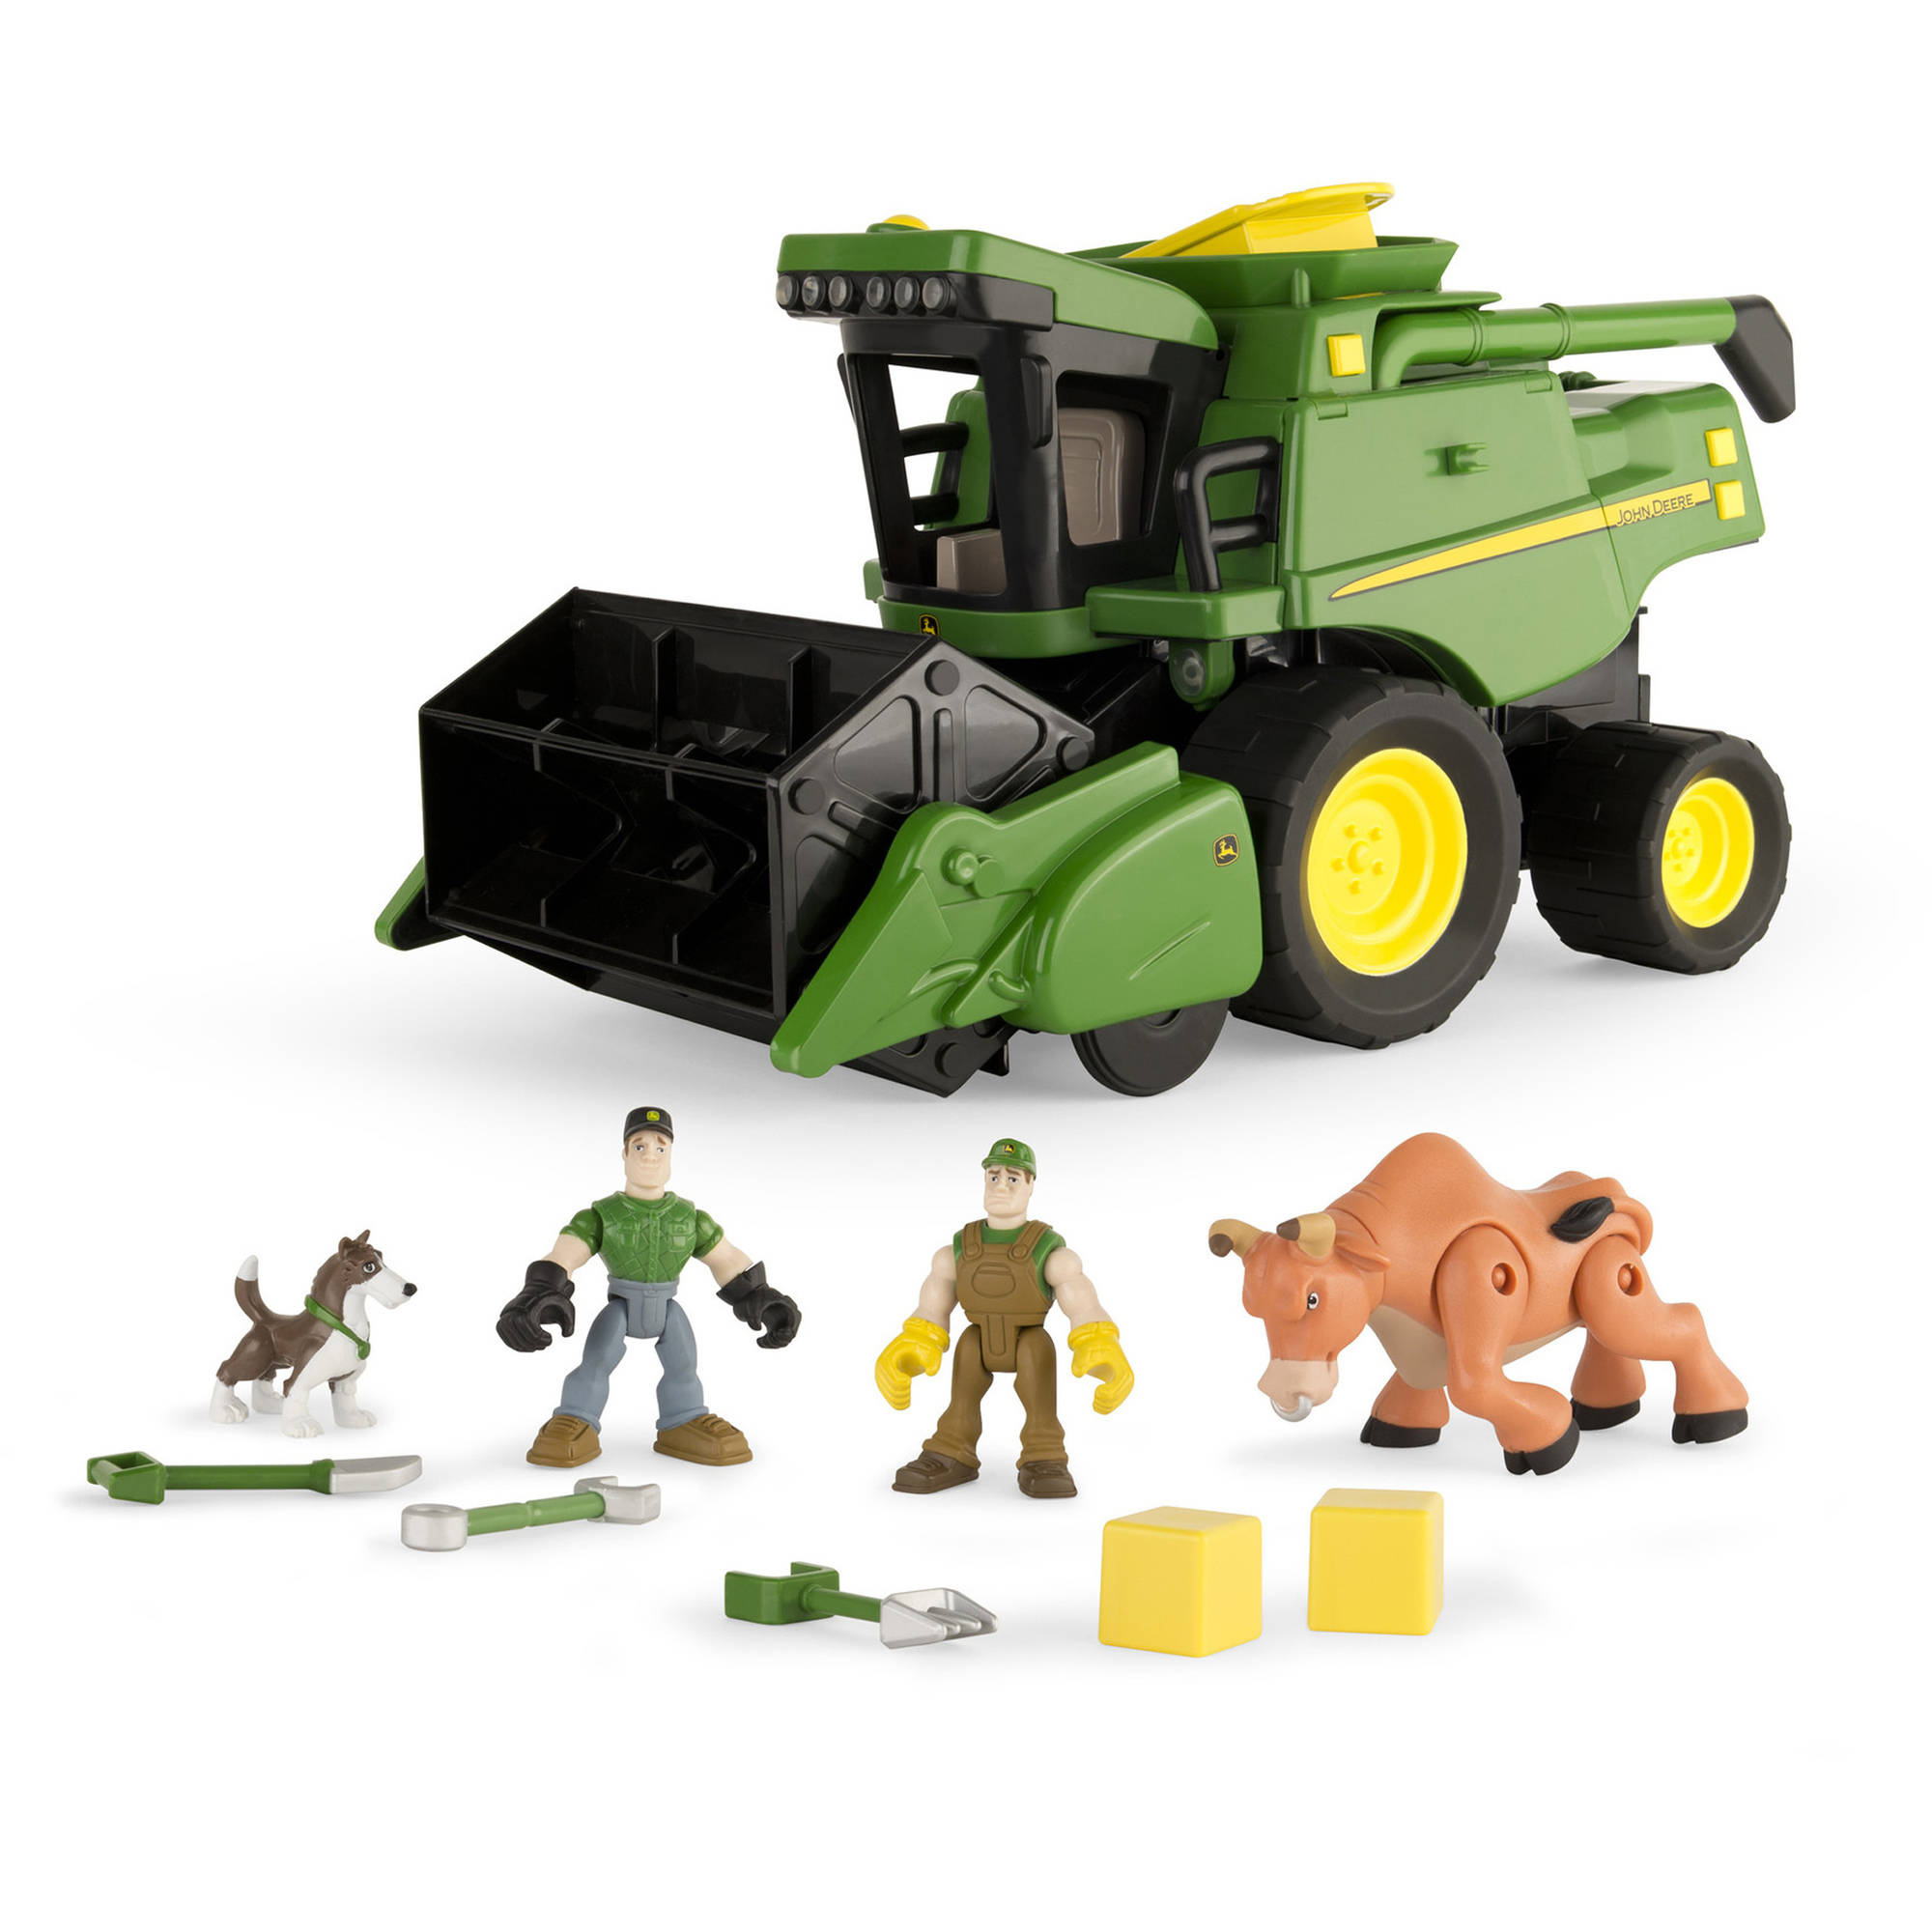 John Deere Gear Force Combine Harvester Play Set